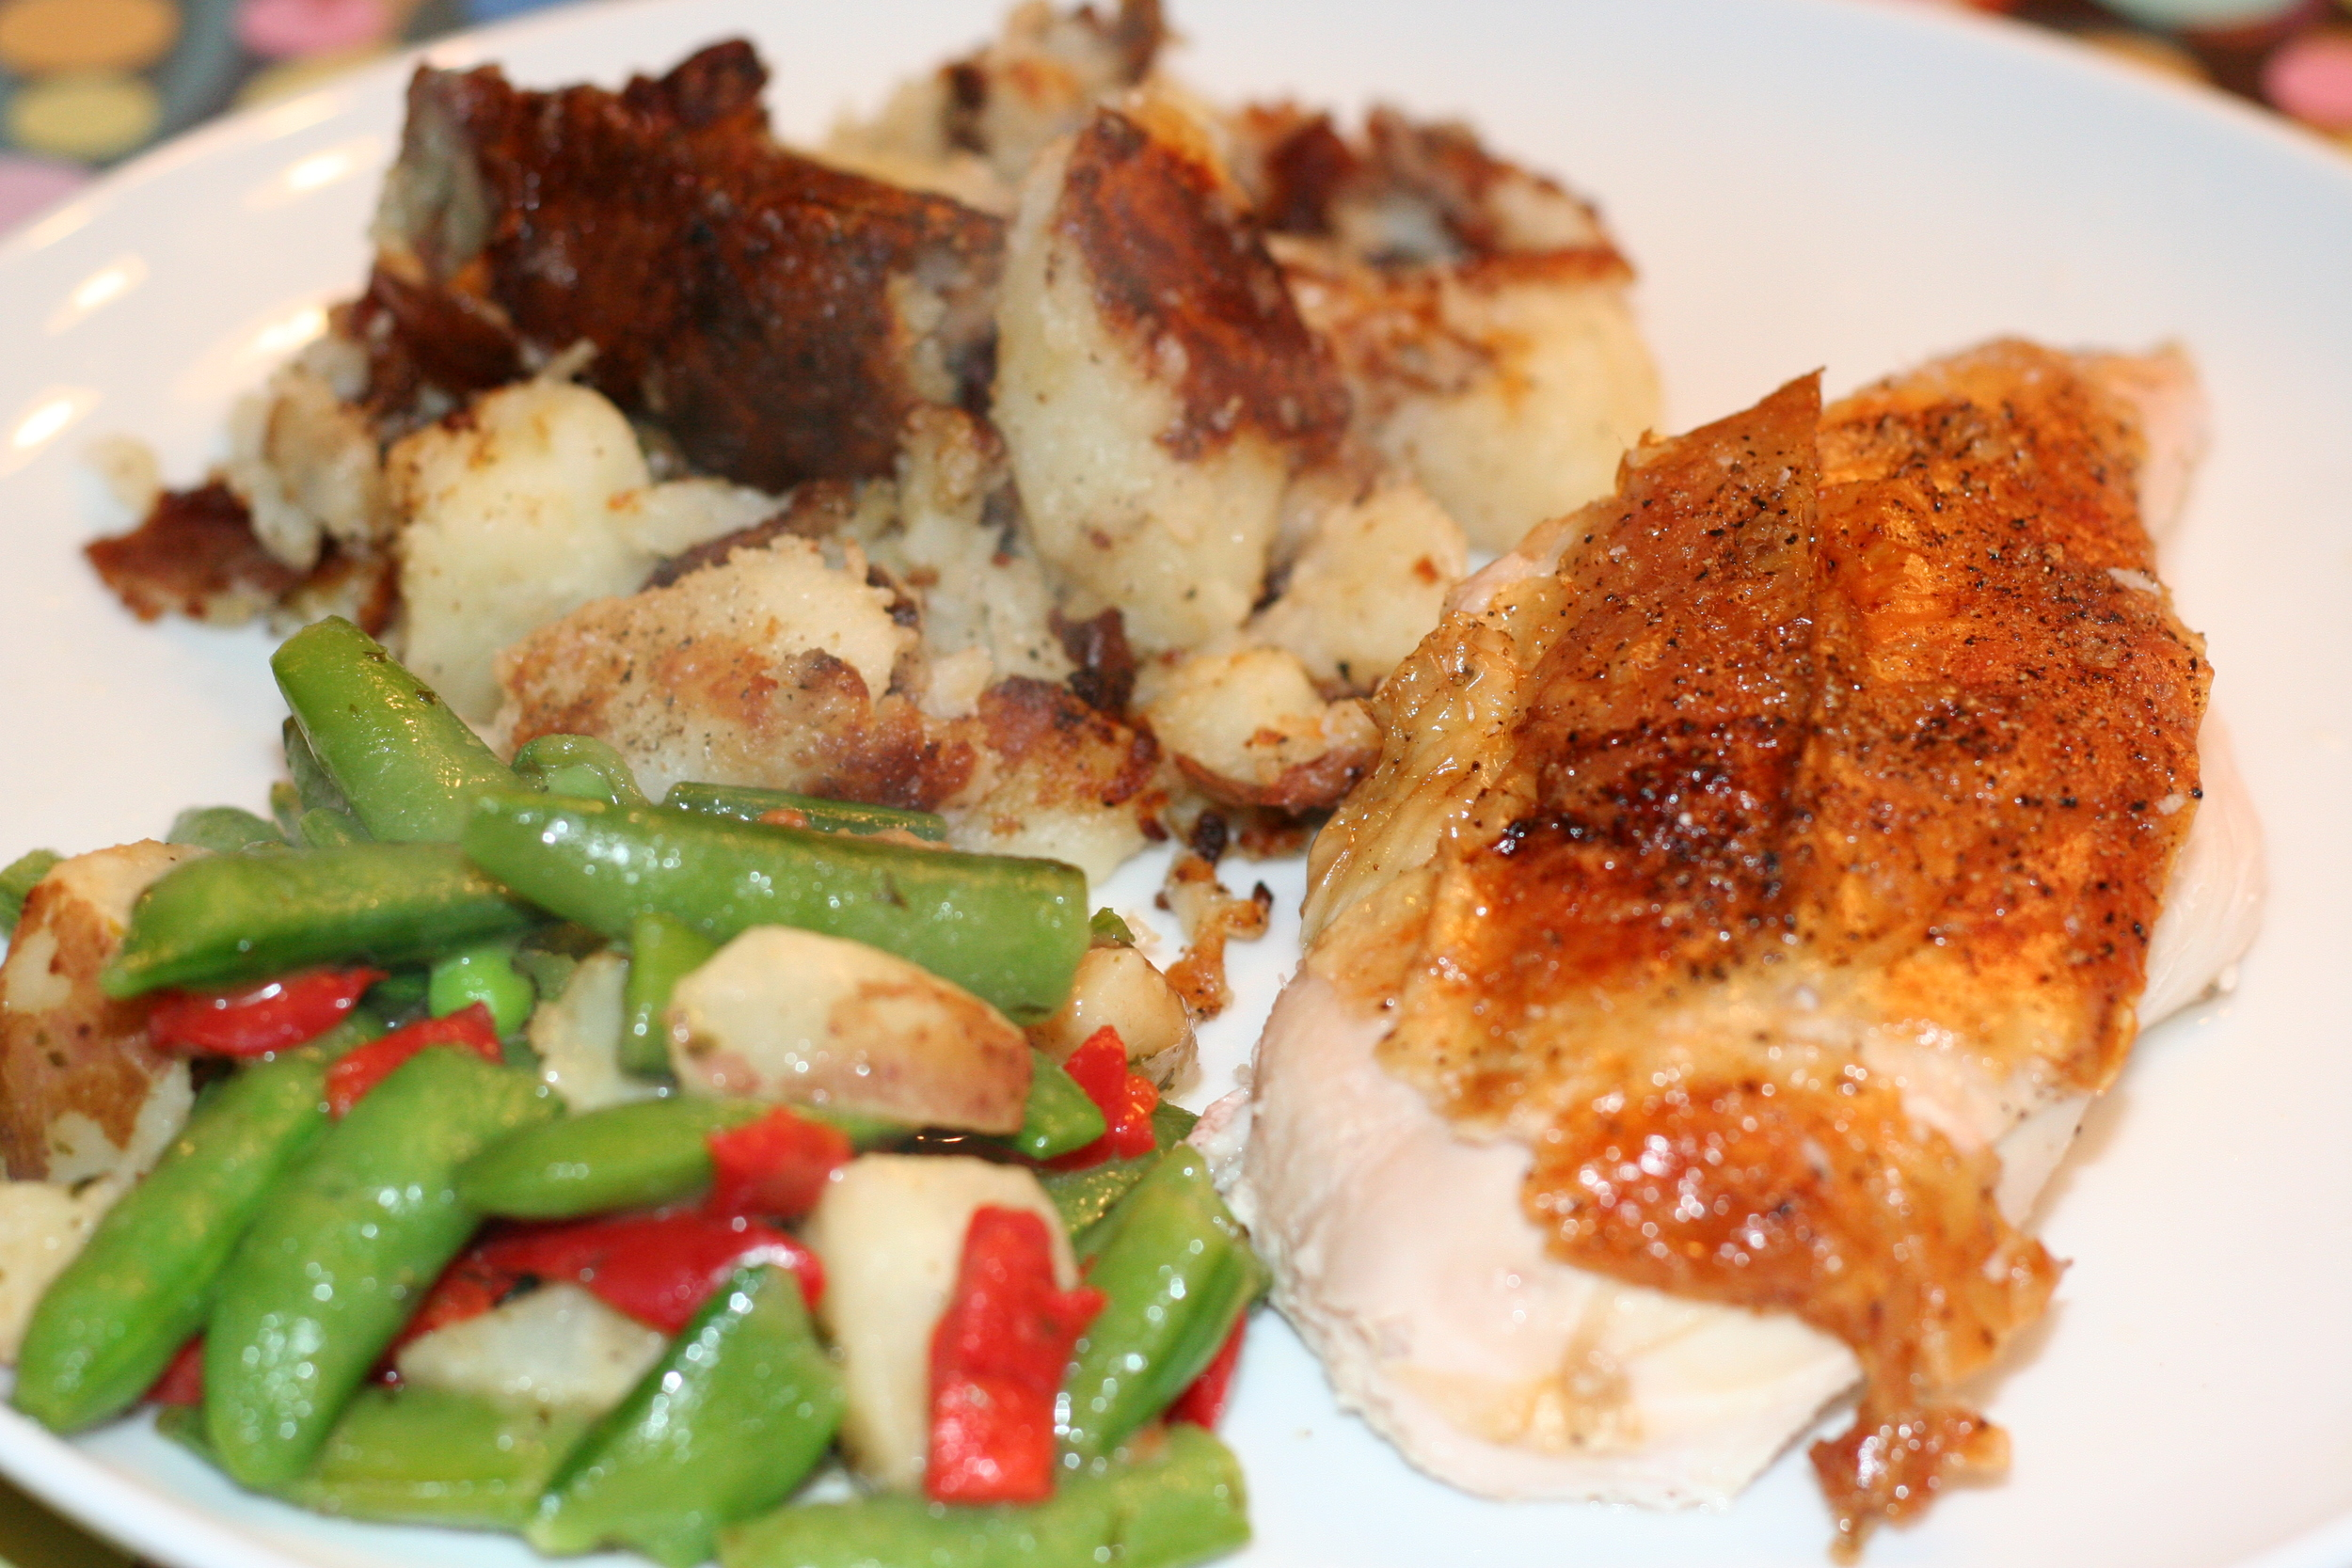 Roasted Chicken with Smashed Potatoes and veges